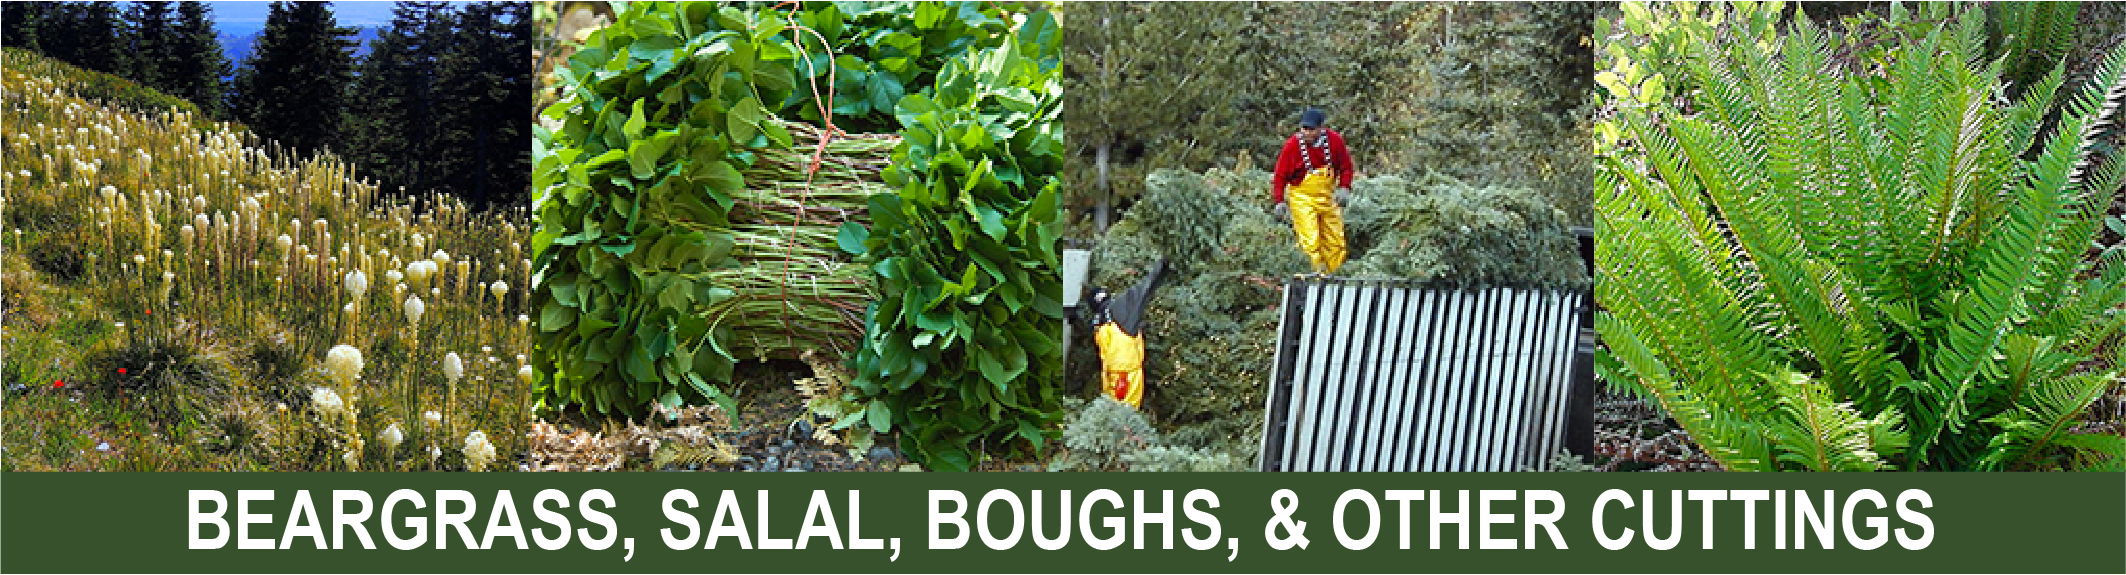 Click for info on Beargrass, salal, boughs, ferns, & cuttings